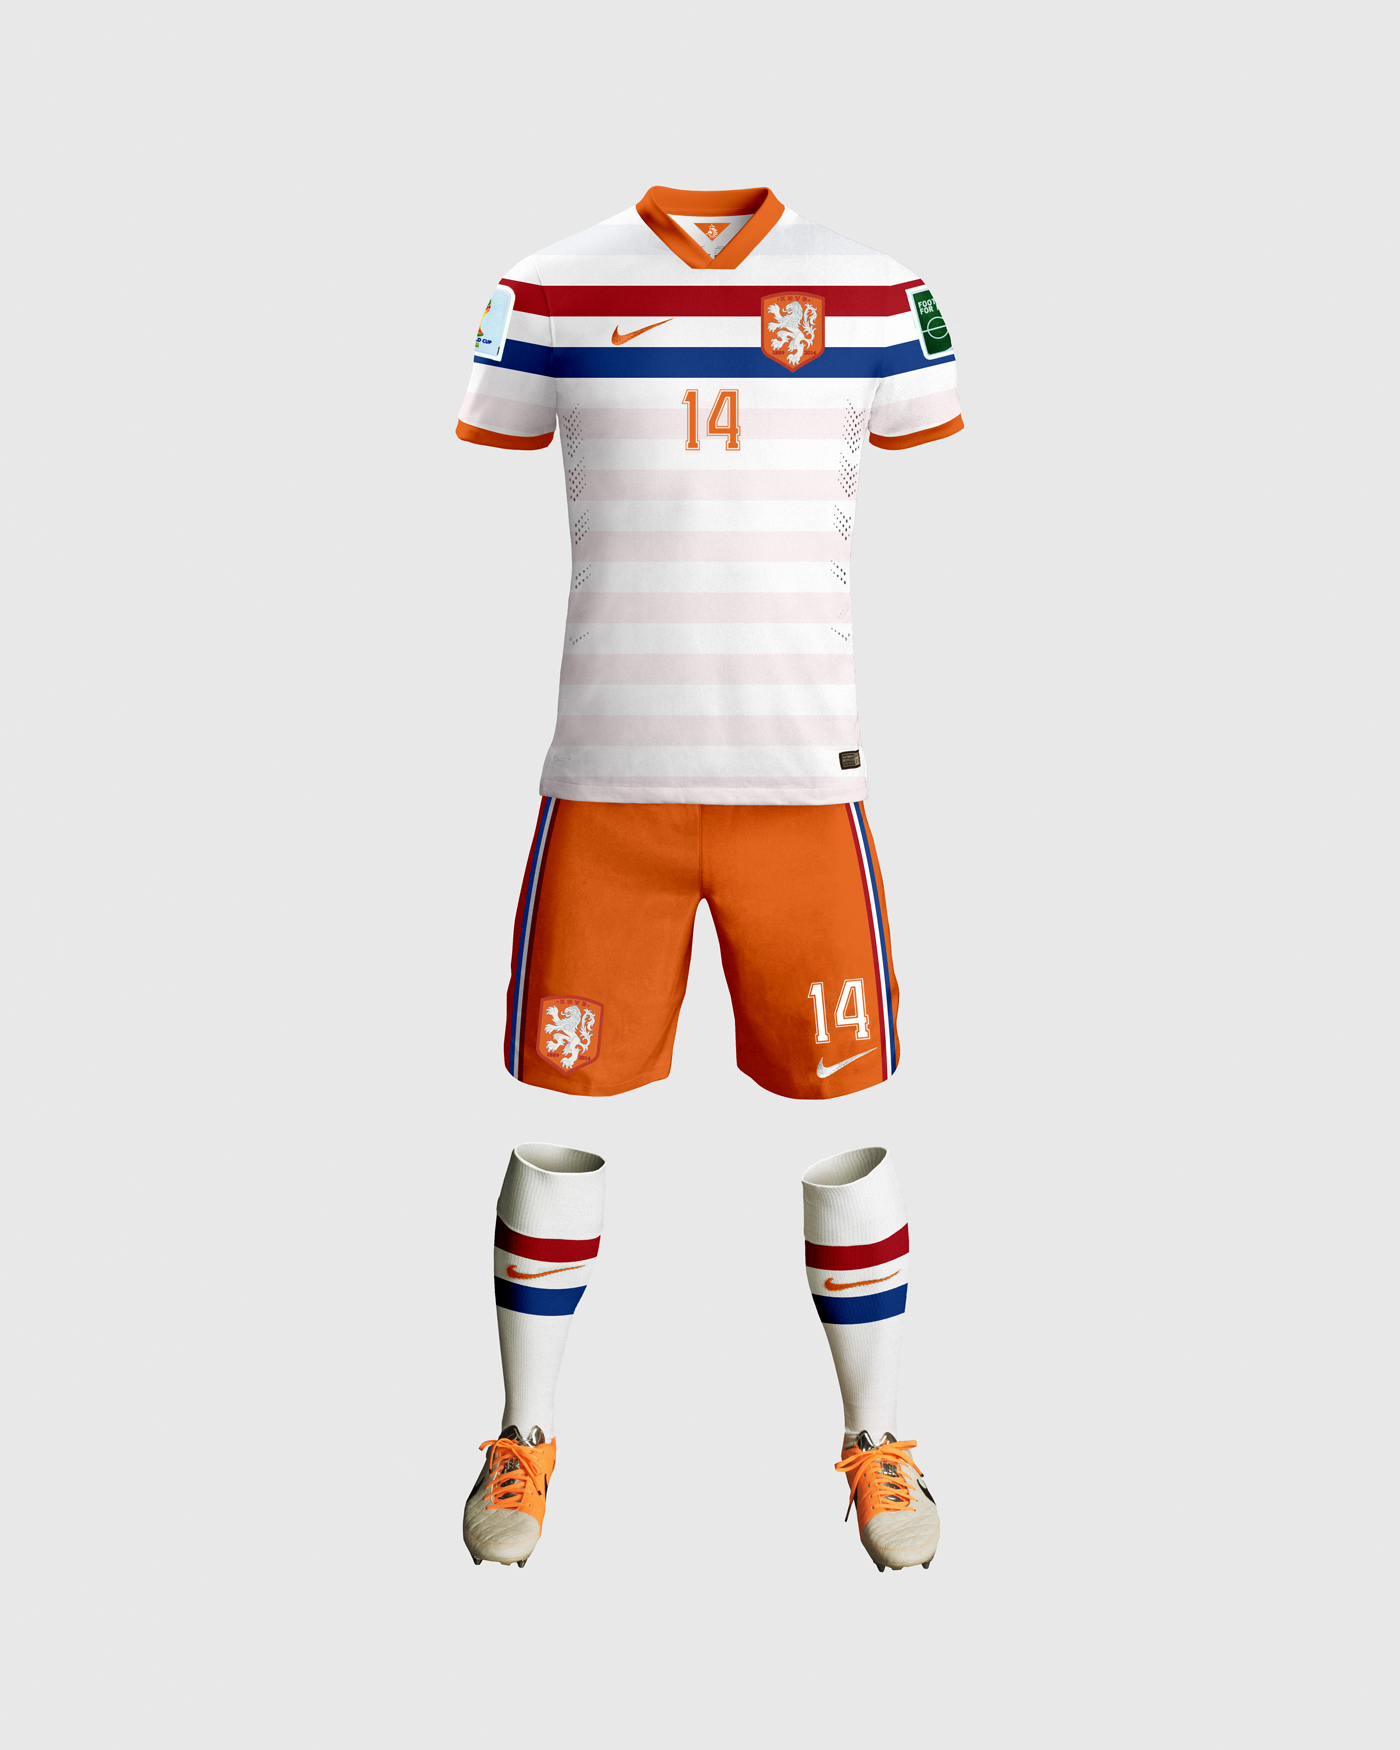 timeless design ca765 66fc7 Netherlands Away Kit Design by ayyberk on DeviantArt